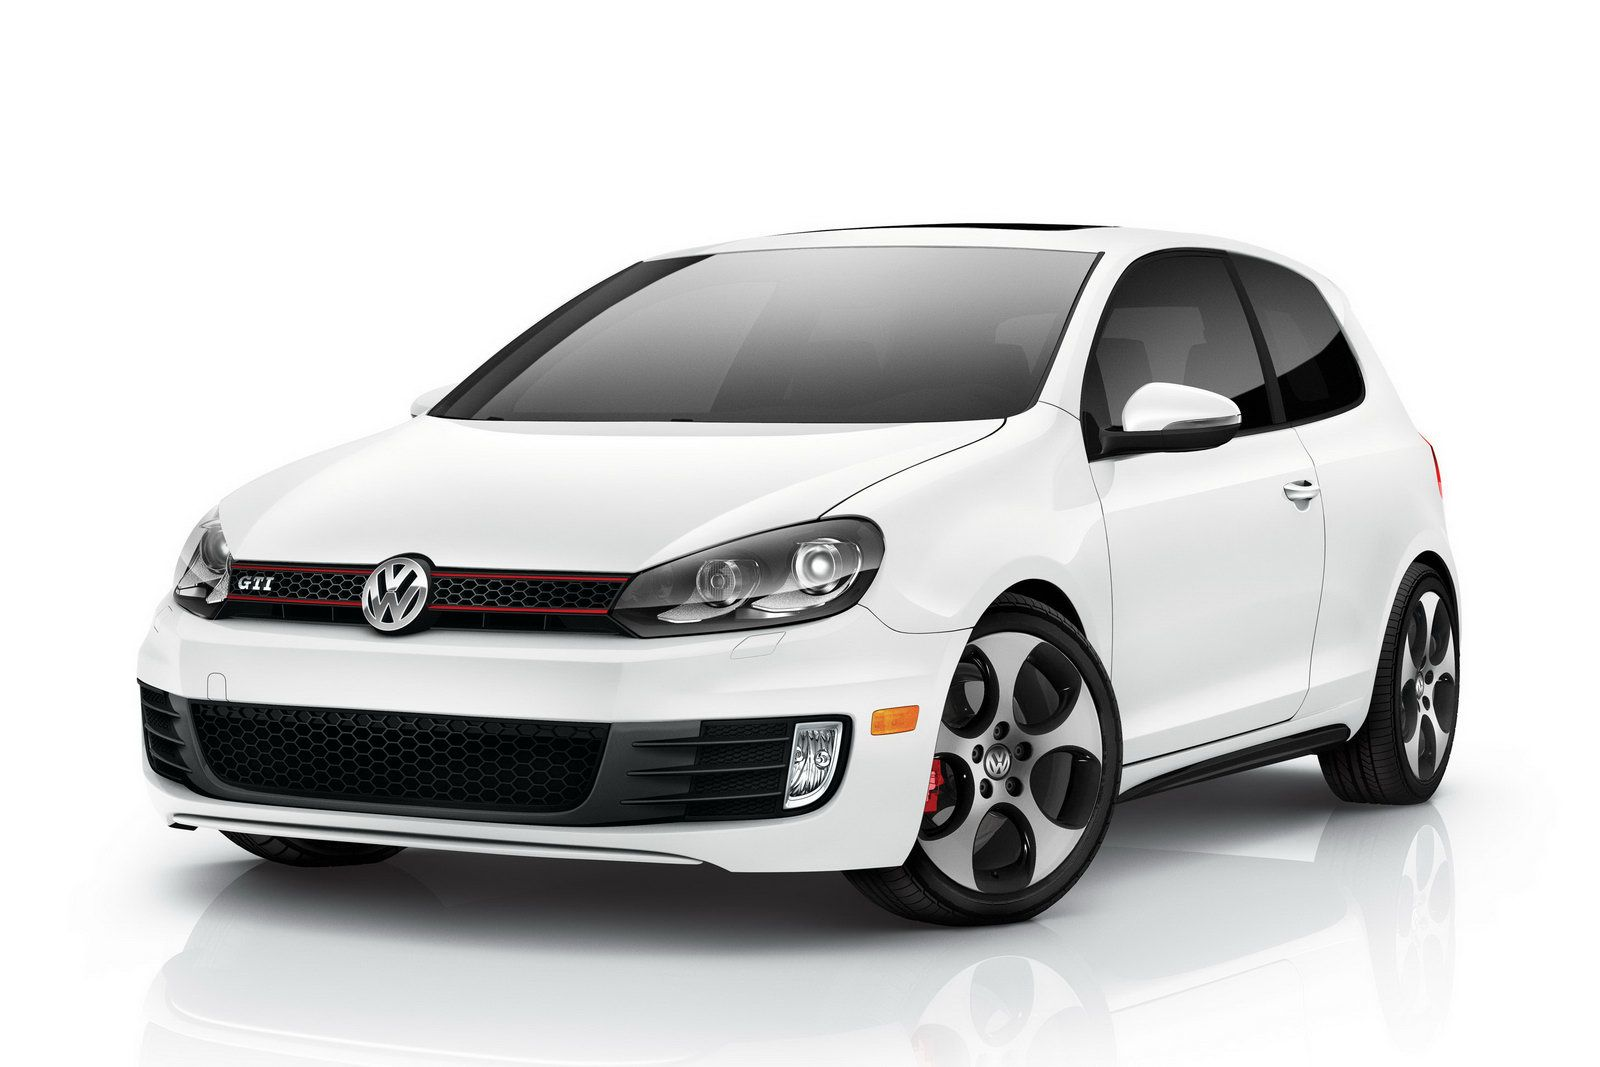 VW 2 Door GTI Ill Take One In White With Black Rims Looks Like A Storm Trooper Car